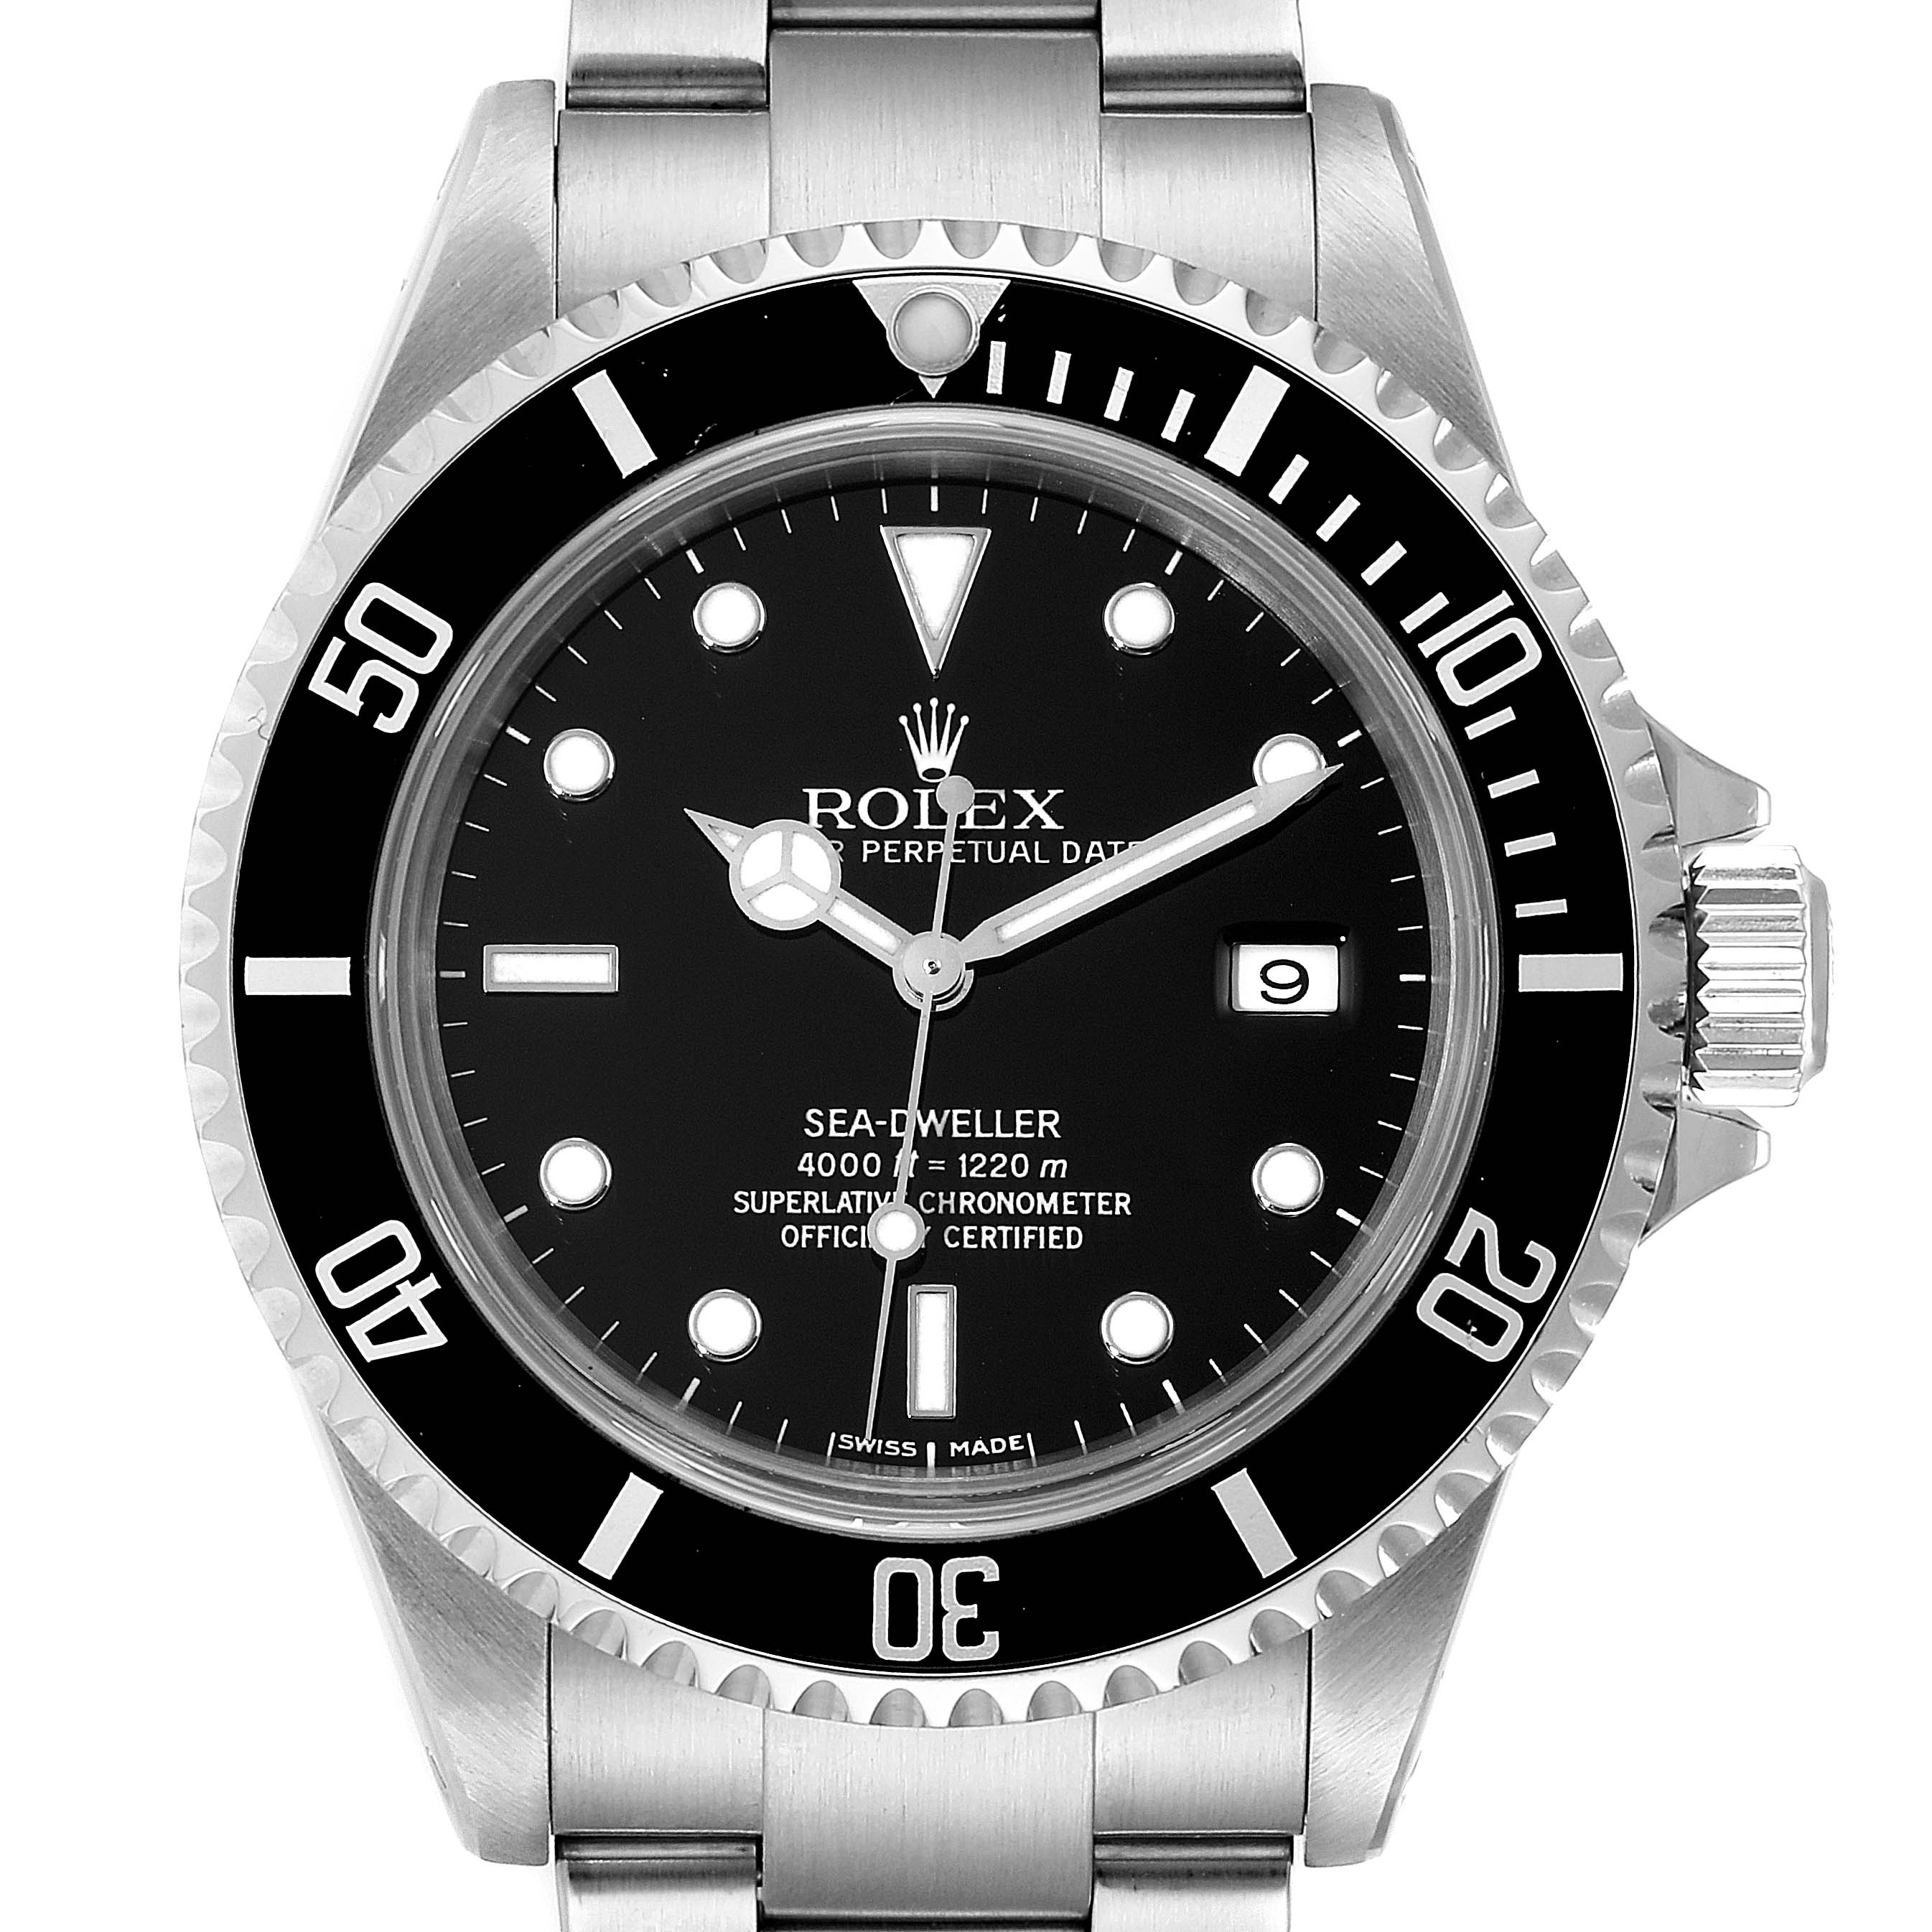 Photo of Rolex Seadweller Black Dial Automatic Steel Mens Watch 16600